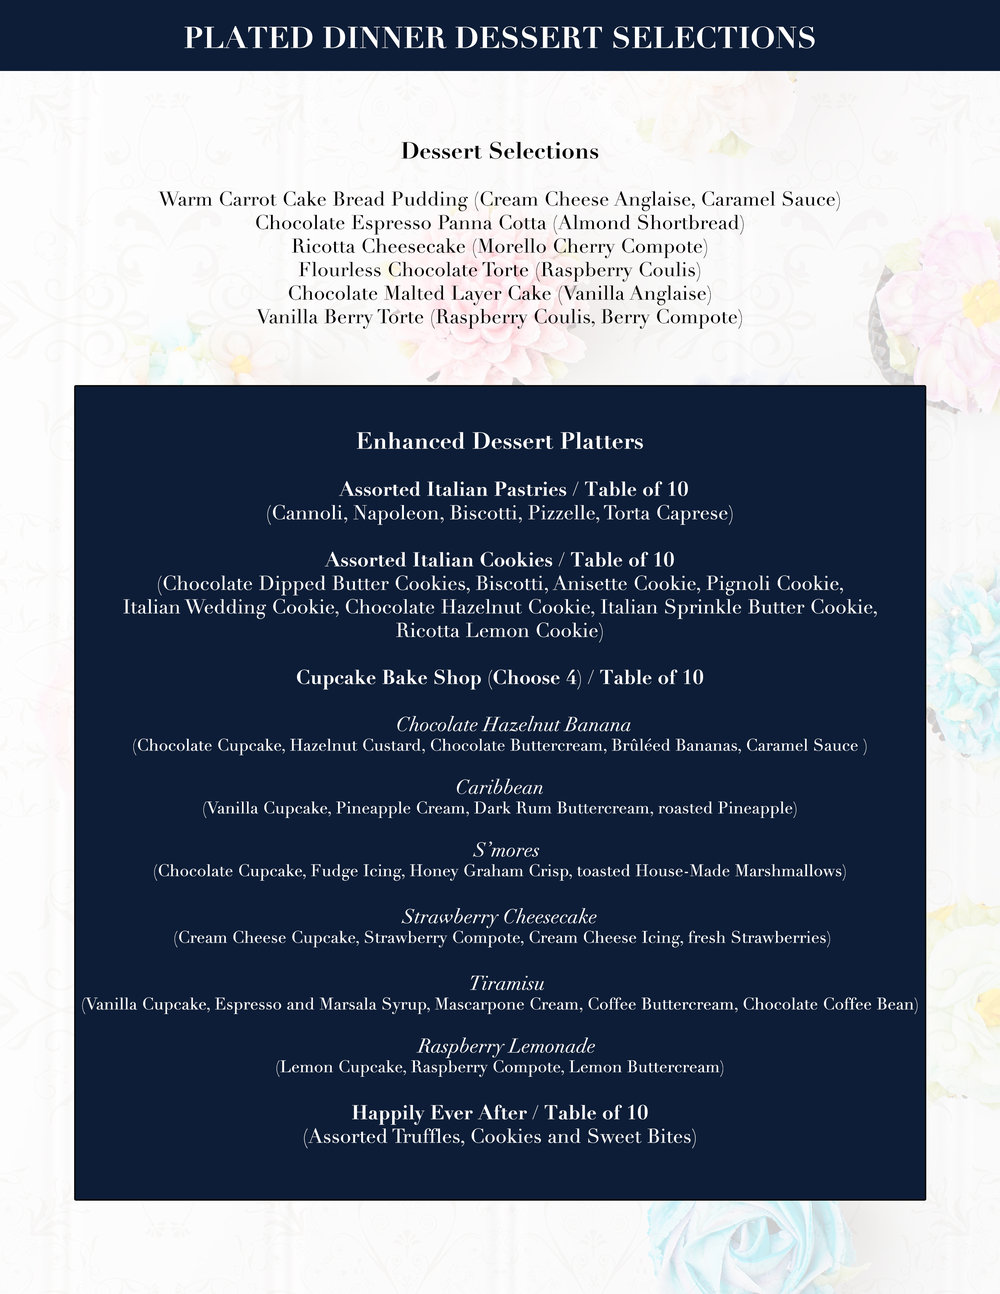 Wedding-Menu-PG-11-without-Pricing.jpg